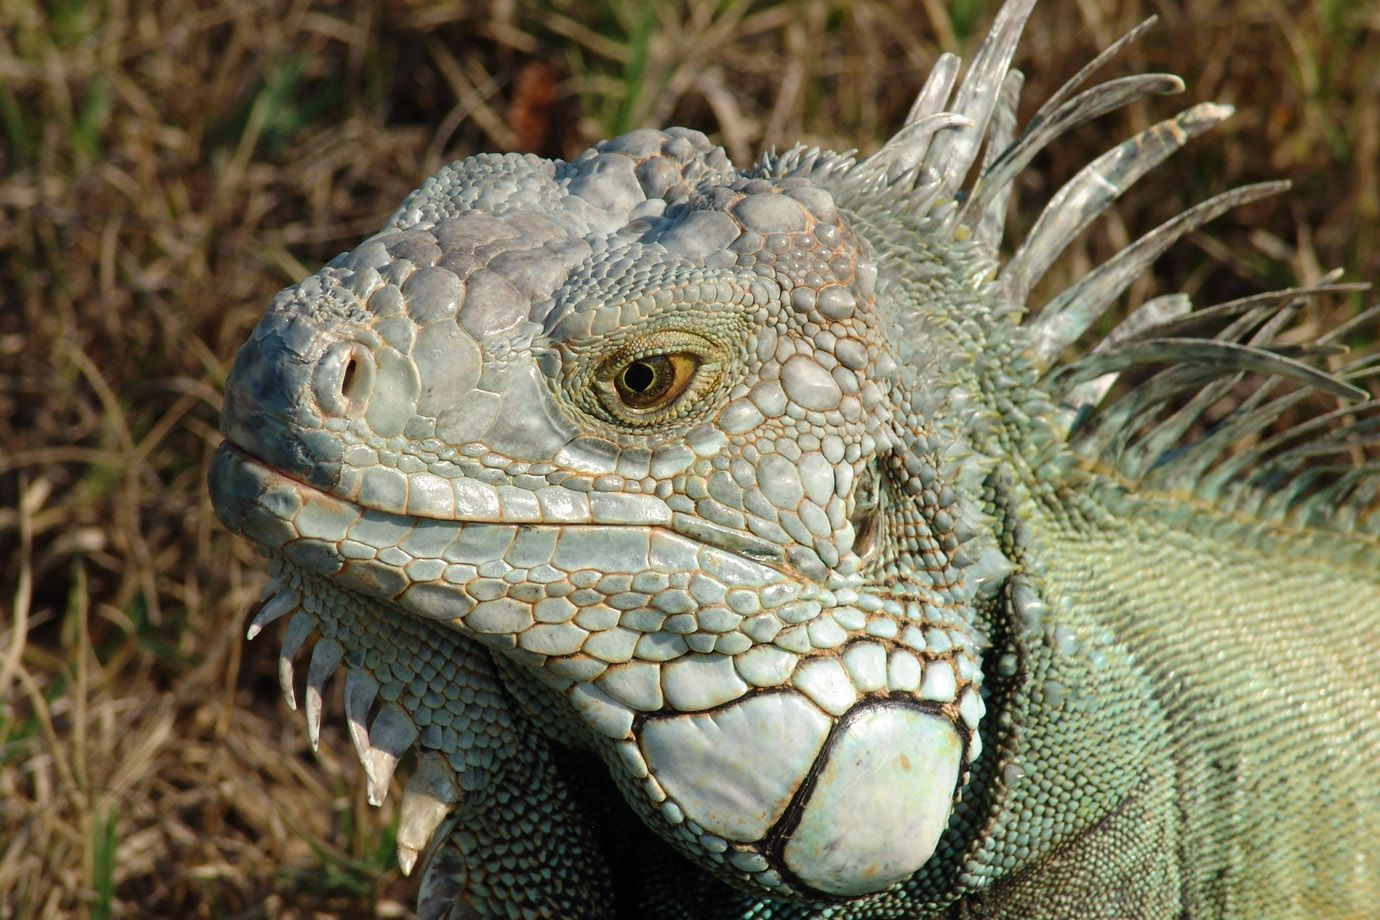 An Iguana as an interesting exponent of the reptiles